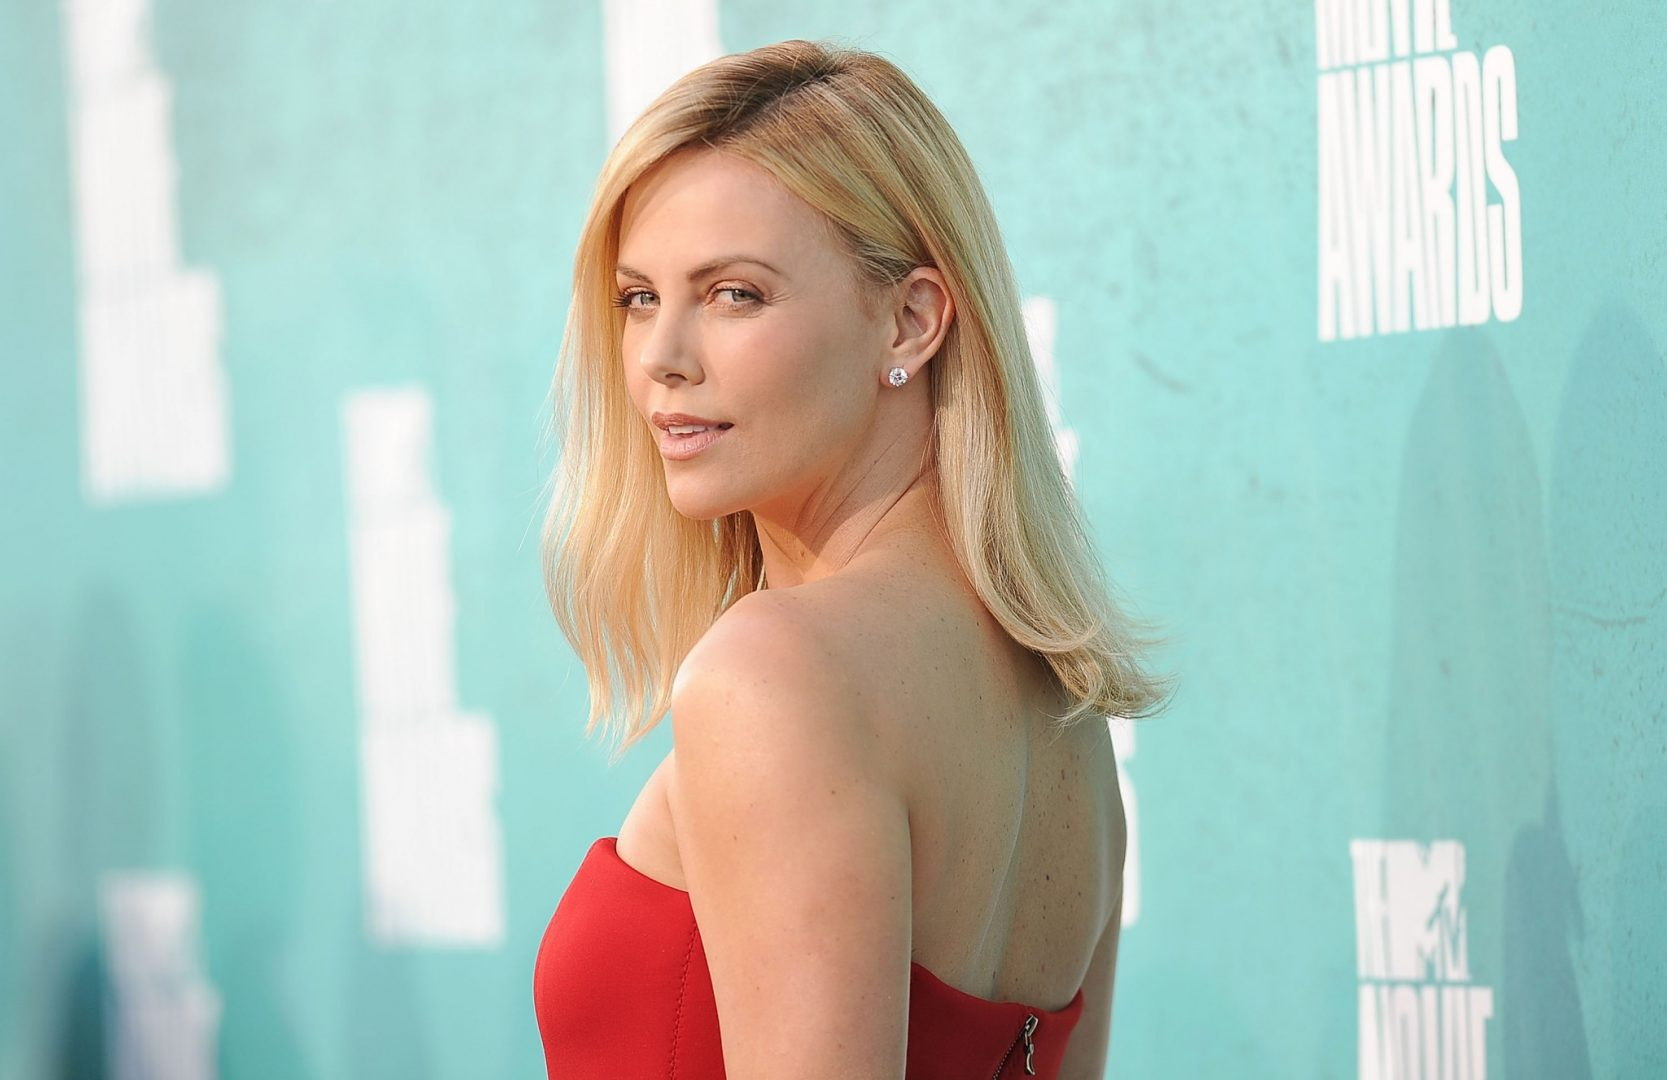 Charlize Theron Loaded interview